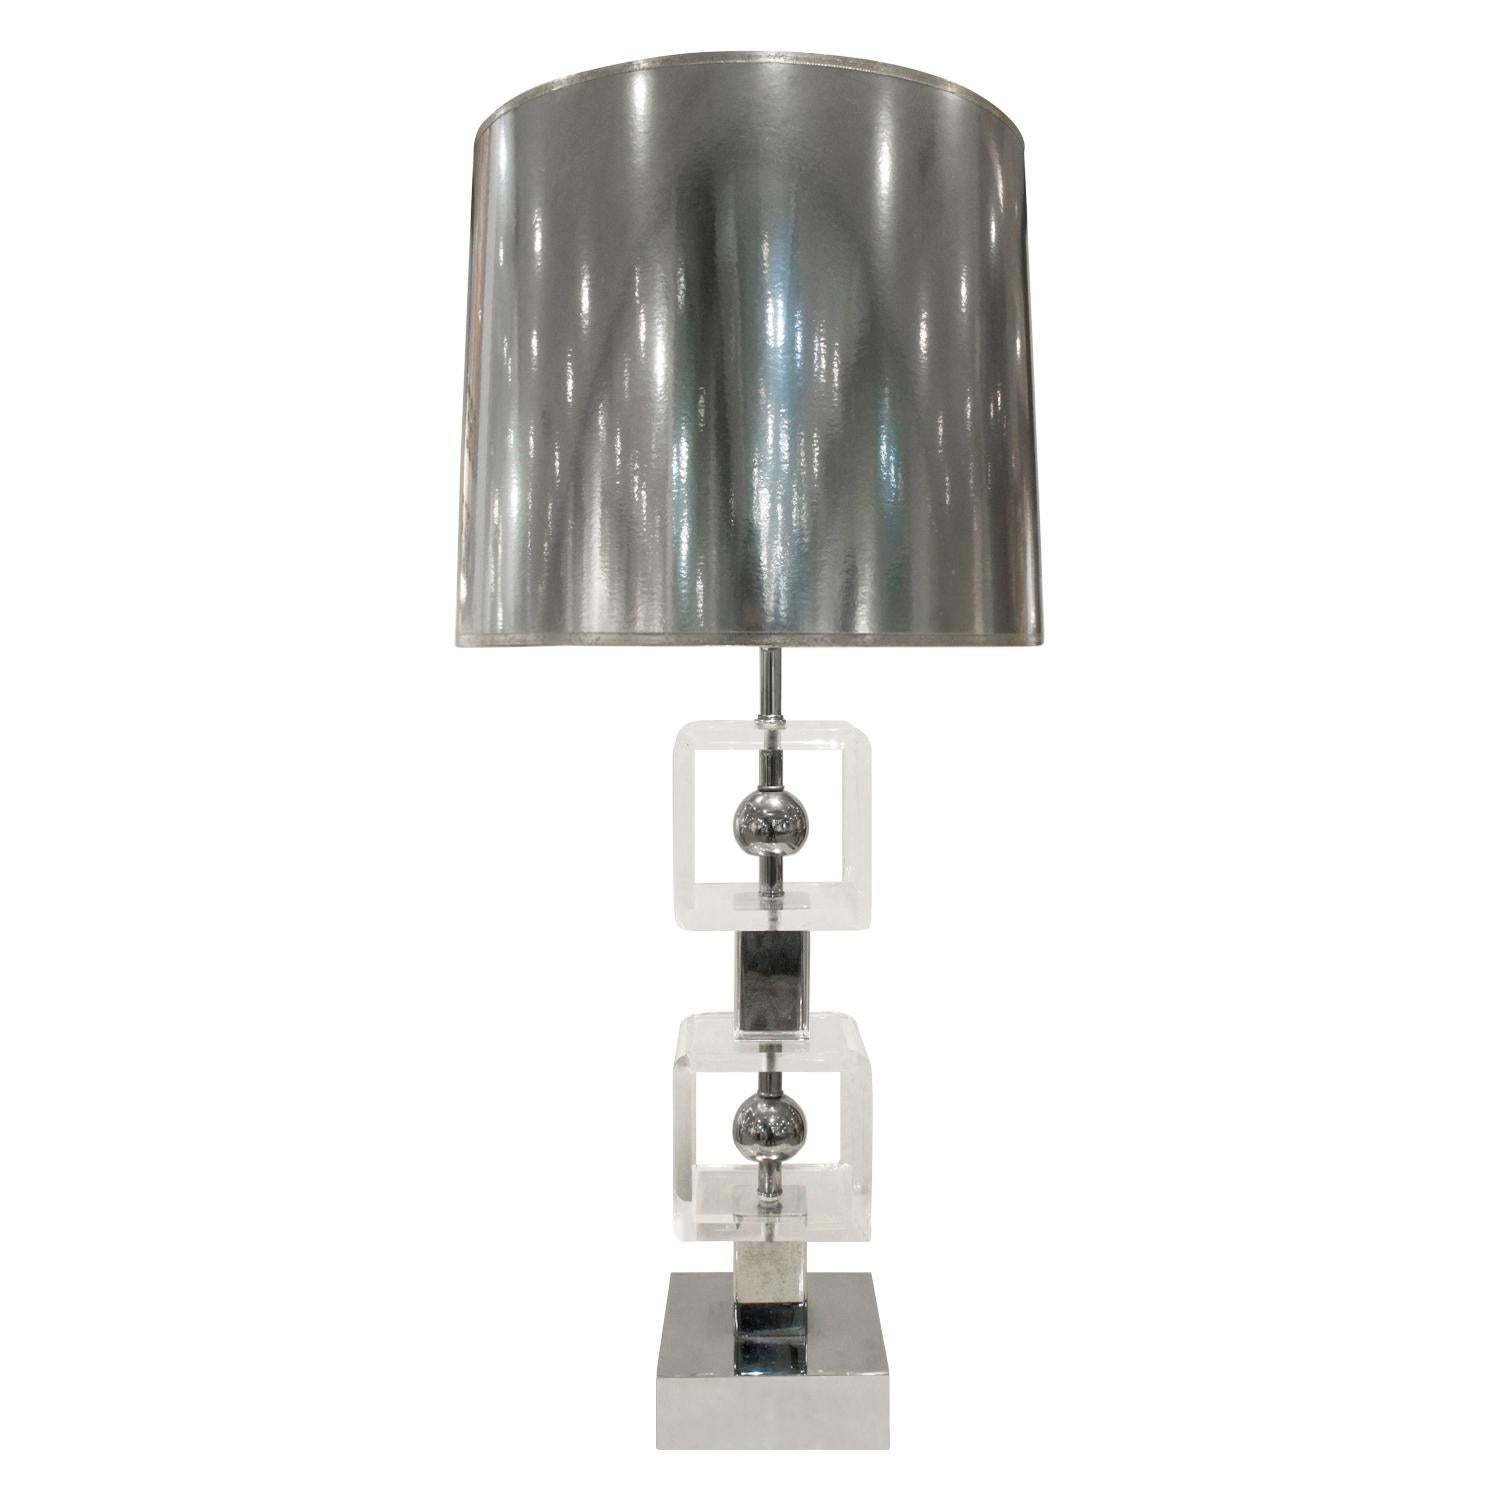 Chic Table Lamp in Lucite and Chrome, 1970s